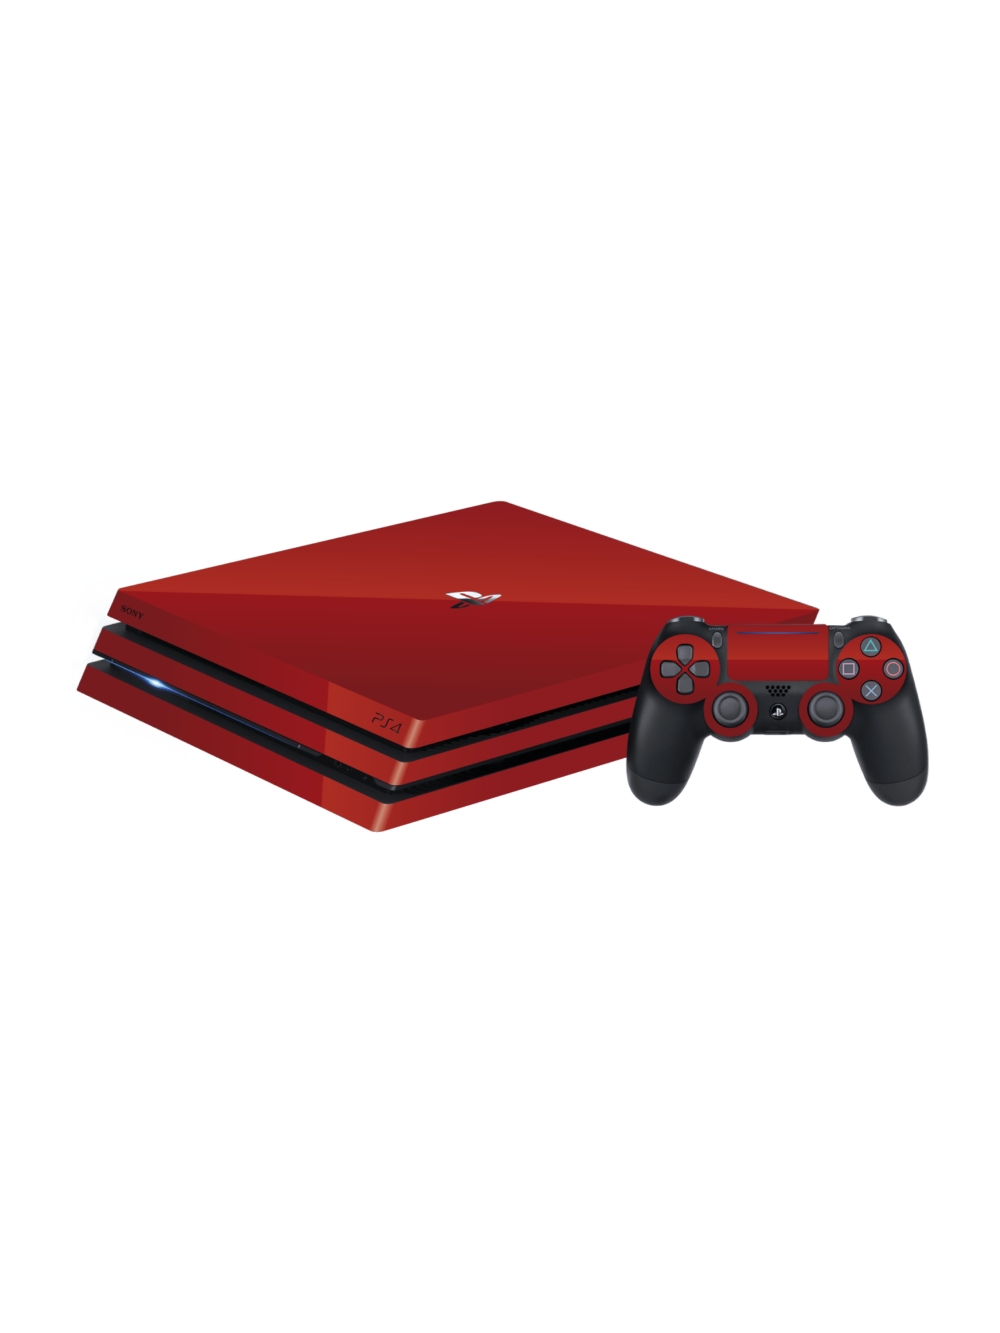 Sony PS4 Pro Glossy Vengeance Red Vinyl Skins Wraps